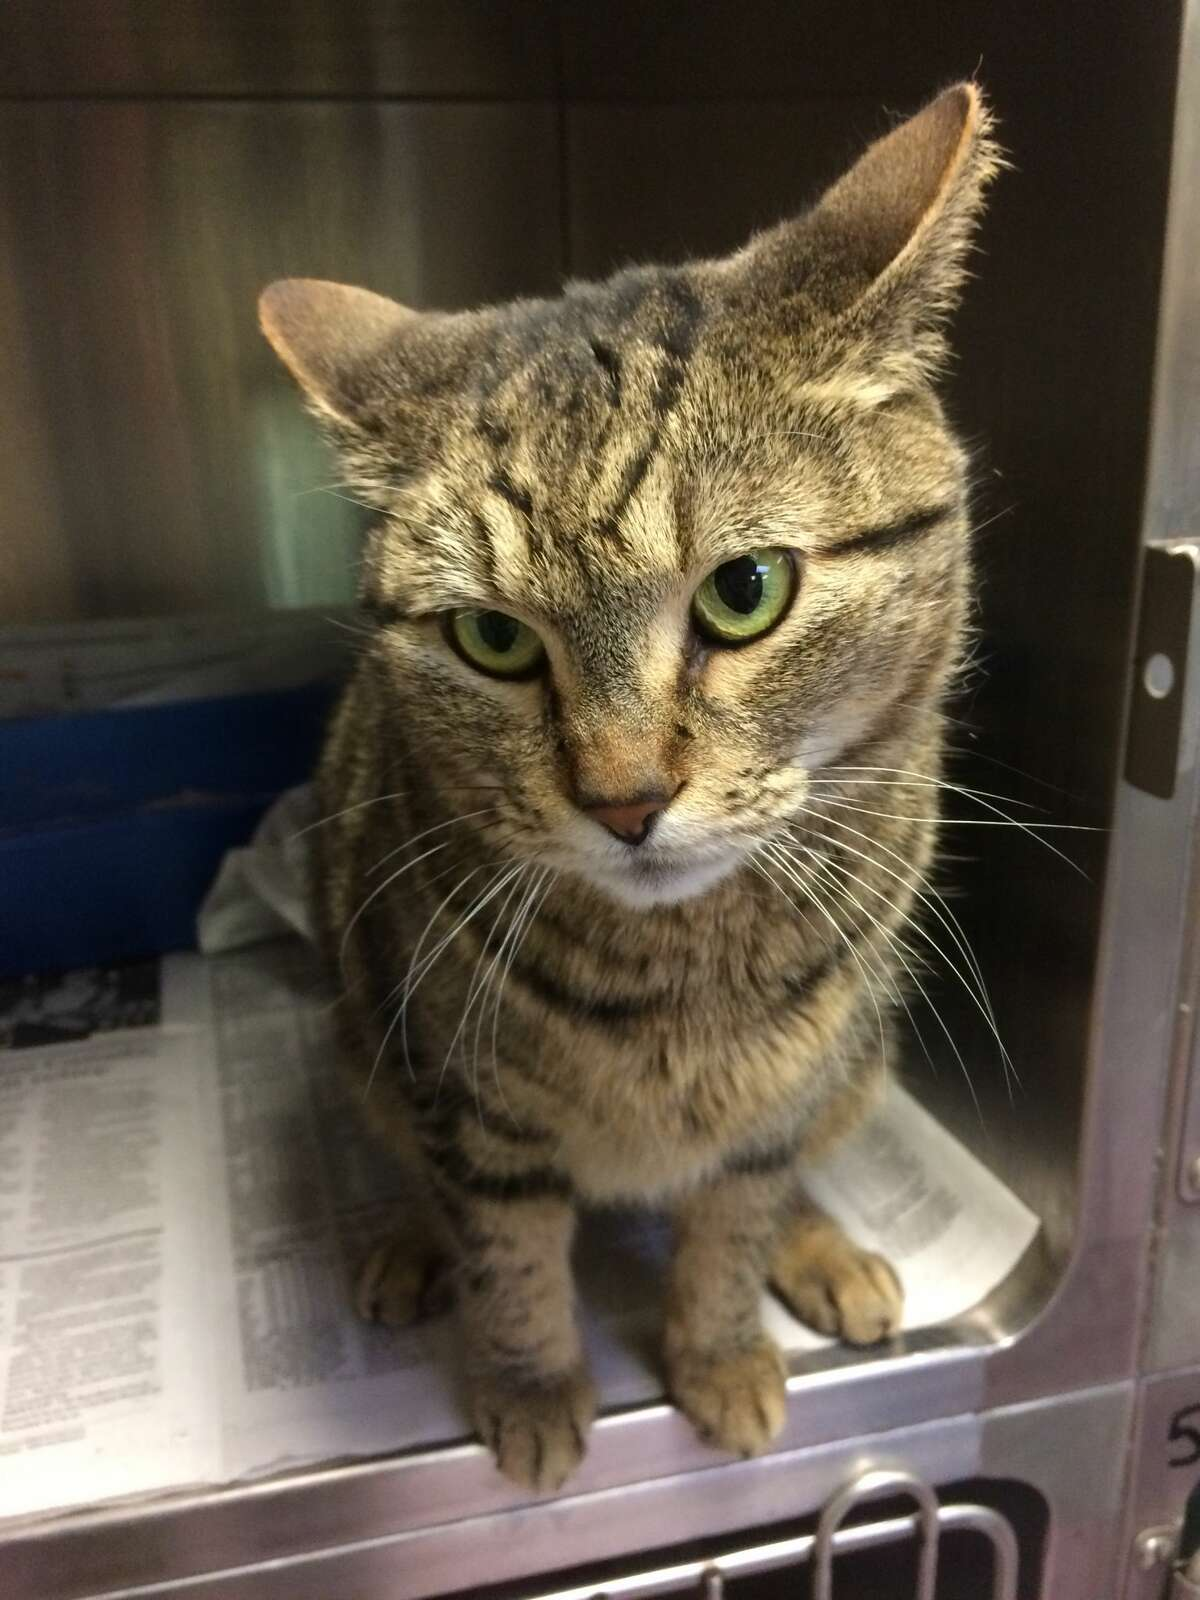 BooBoo the cat disappeared from Watsonville, Calif. in August 2014. She showed up almost four years later in southwestern Ontario, Canada.